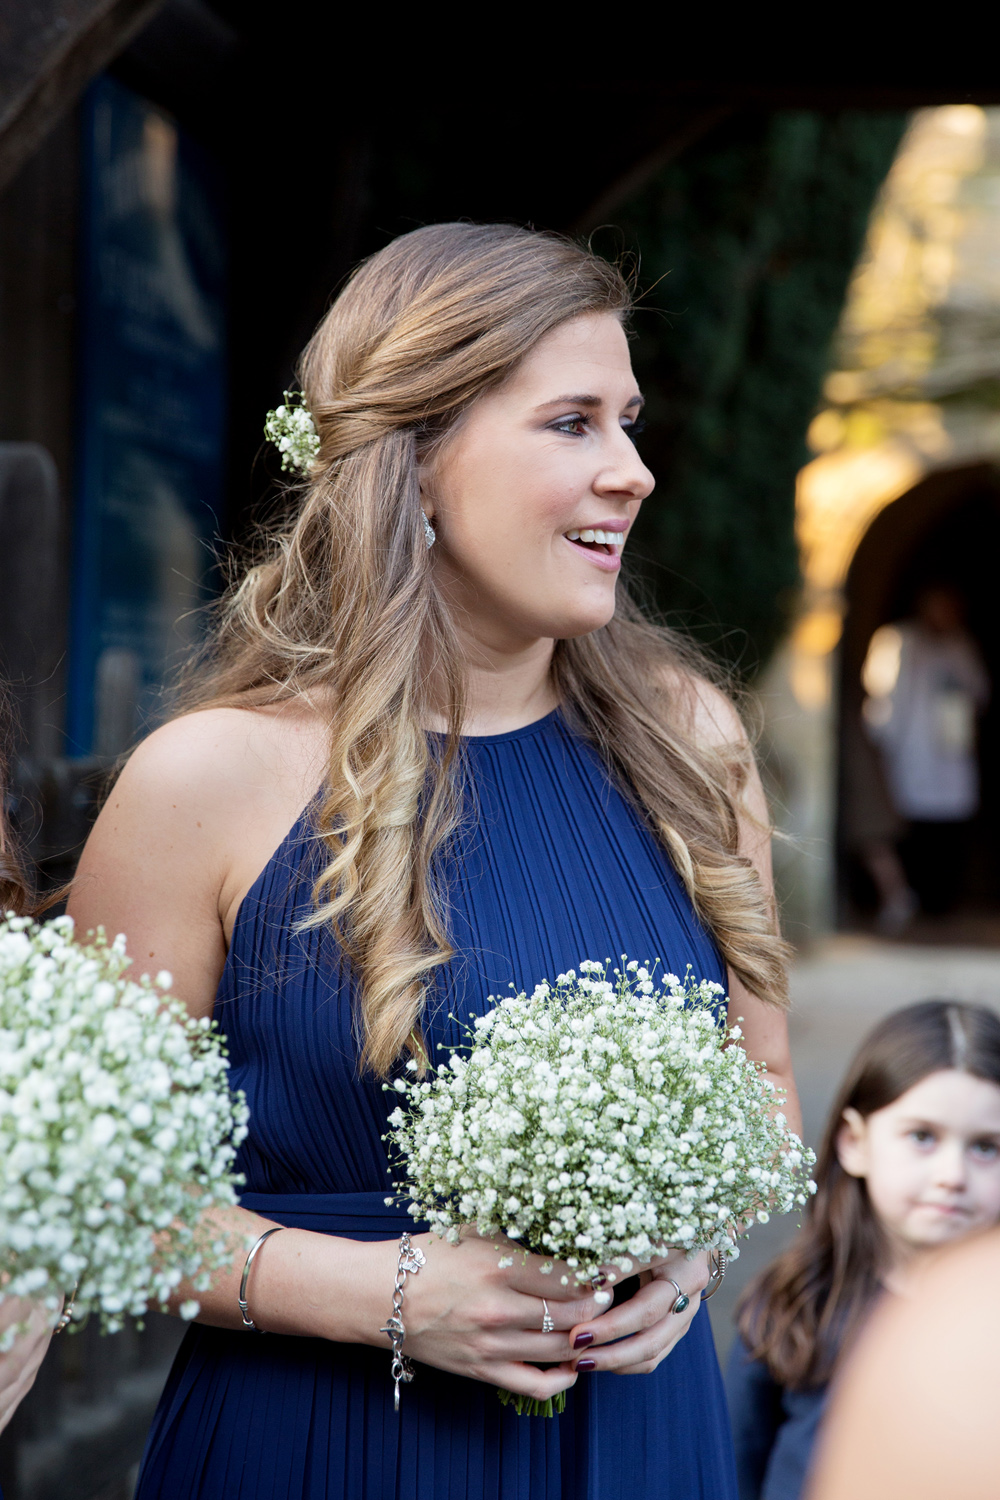 bridesmaid - winter wedding at Hoath House by Helen England Photography, Kent